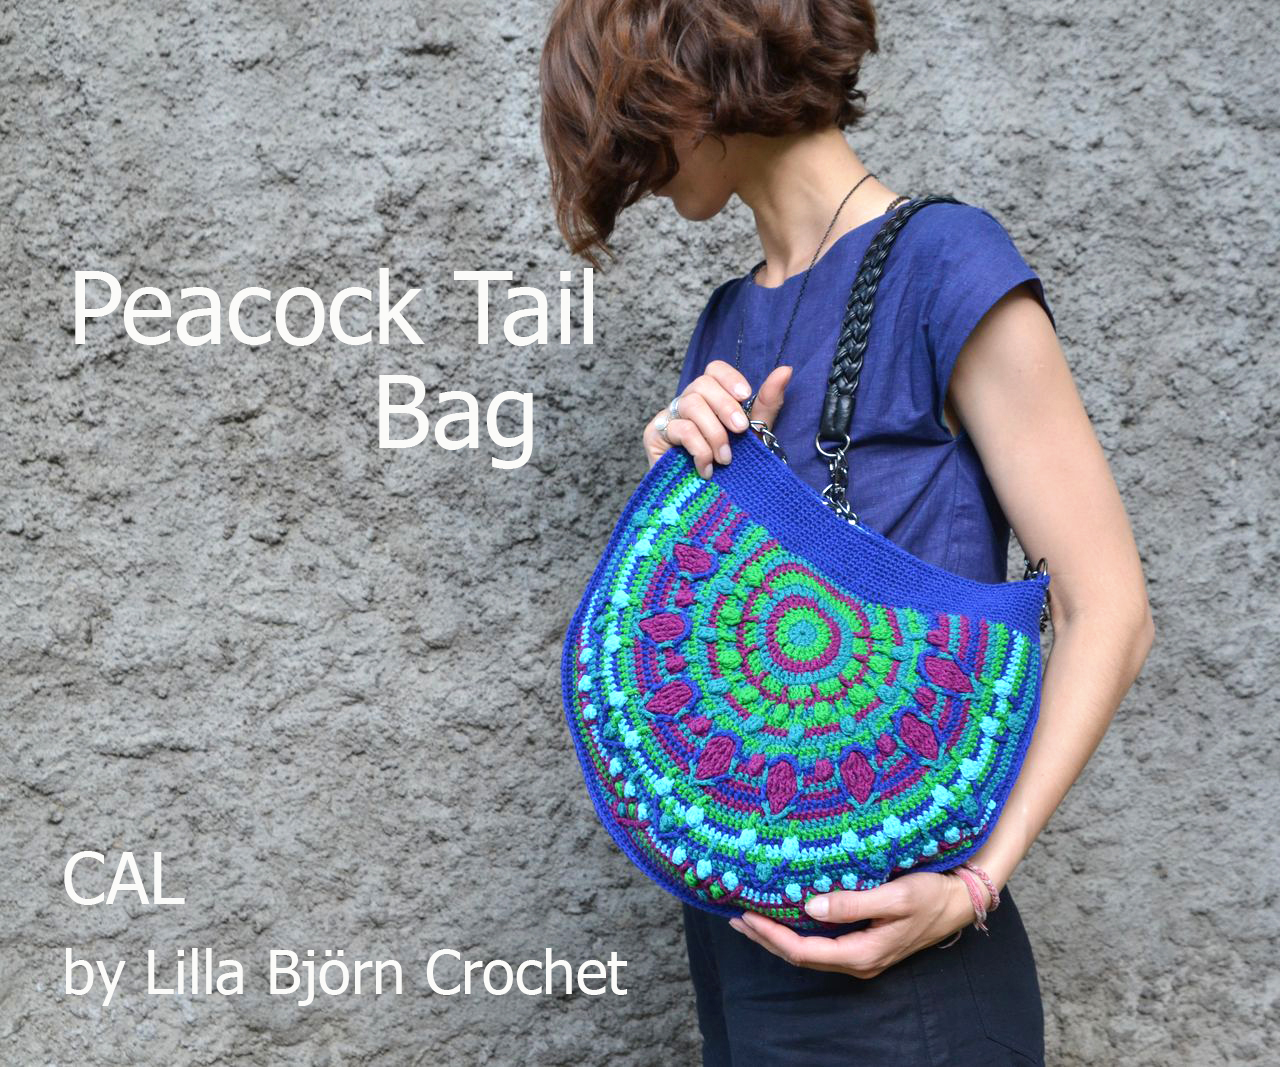 Peacock Tail Bag. CAL in overlay crochet. Original design by Lilla Bjorn Crochet